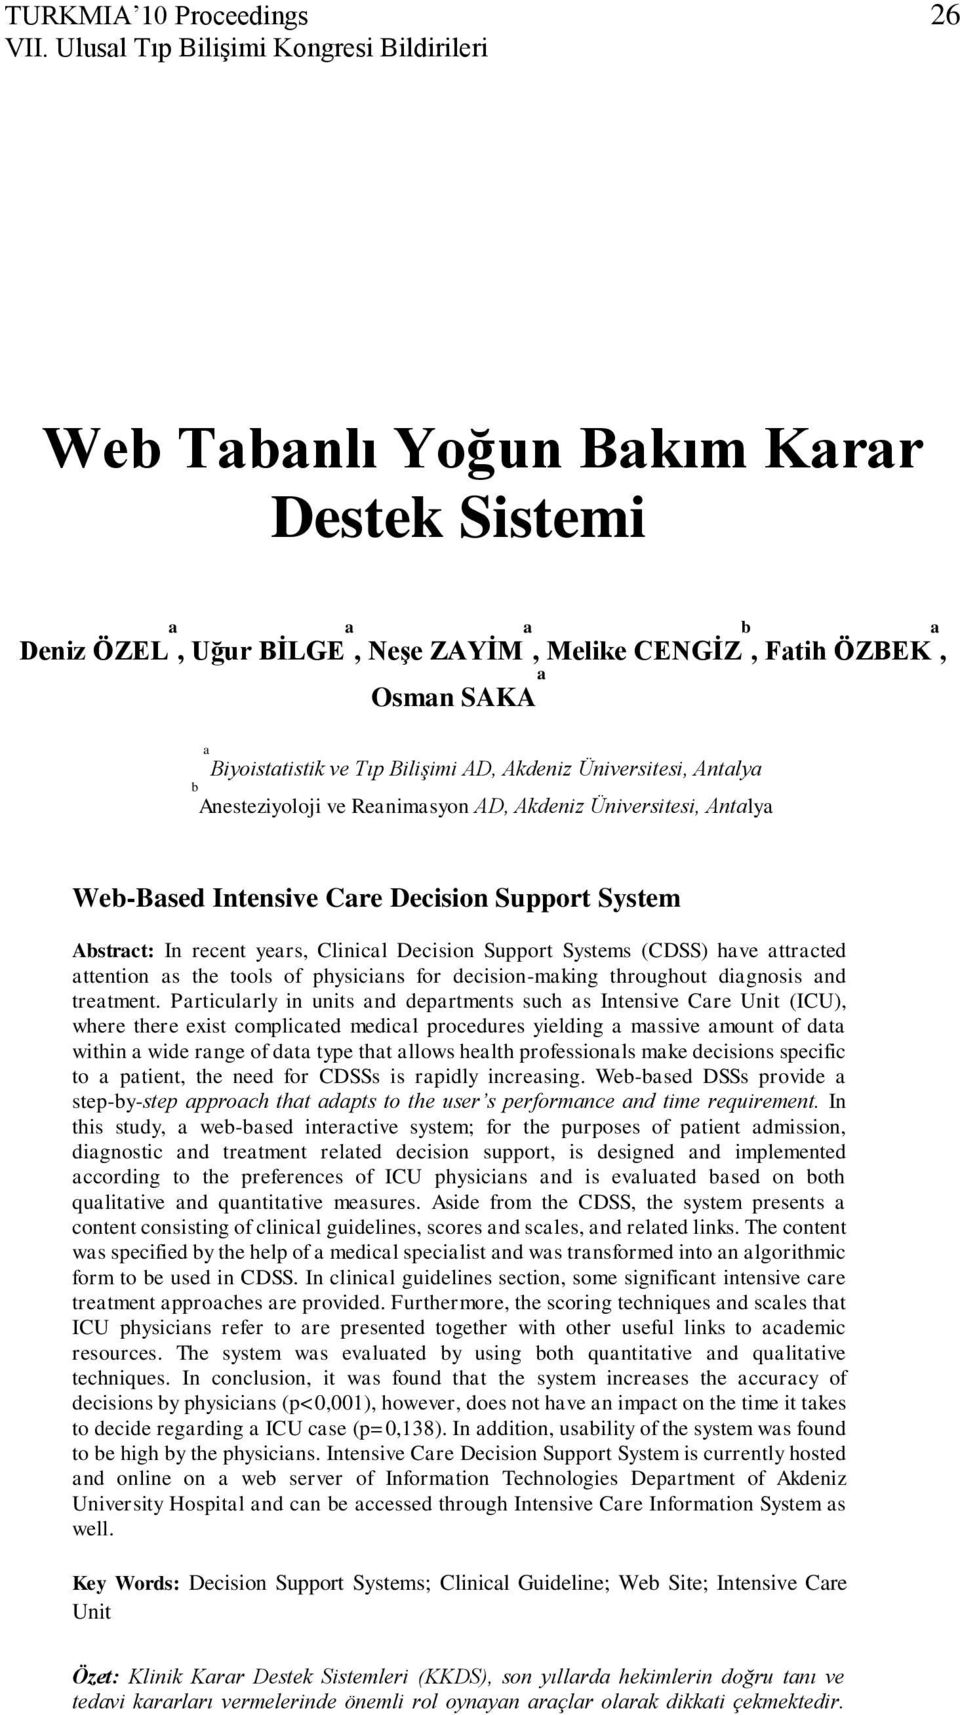 Üniversitesi, Antly b Anesteziyoloji ve Renimsyon AD, Akdeniz Üniversitesi, Antly Web-Bsed Intensive Cre Decision Support System Abstrct: In recent yers, Clinicl Decision Support Systems (CDSS) hve